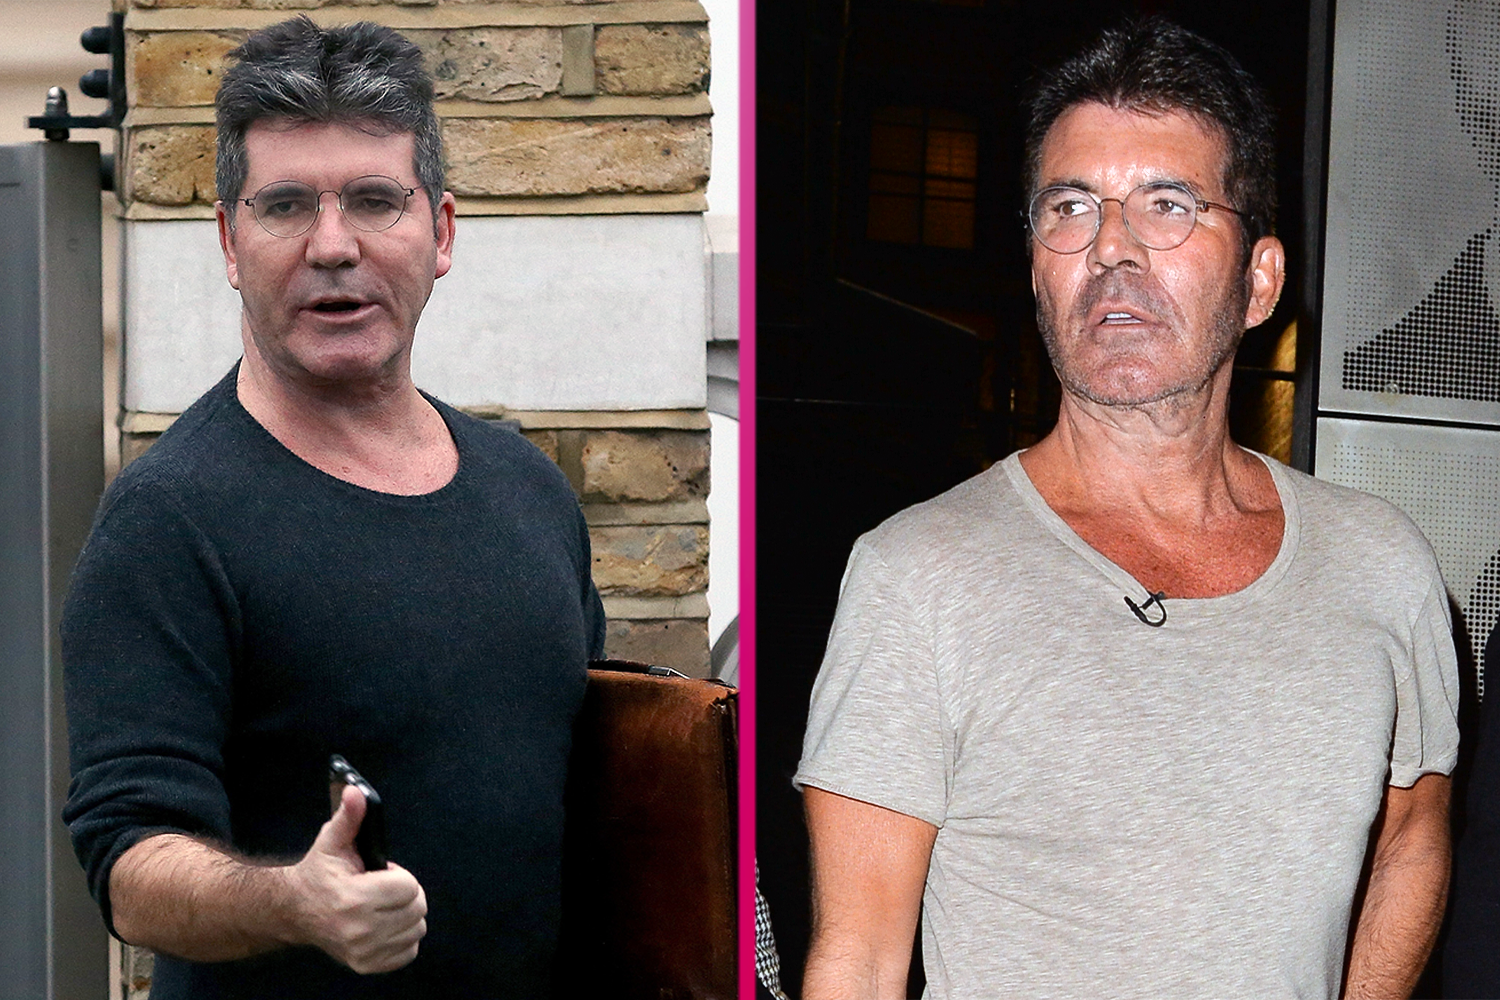 Simon Cowell's weight loss transformation explained including his diet and exercise regime